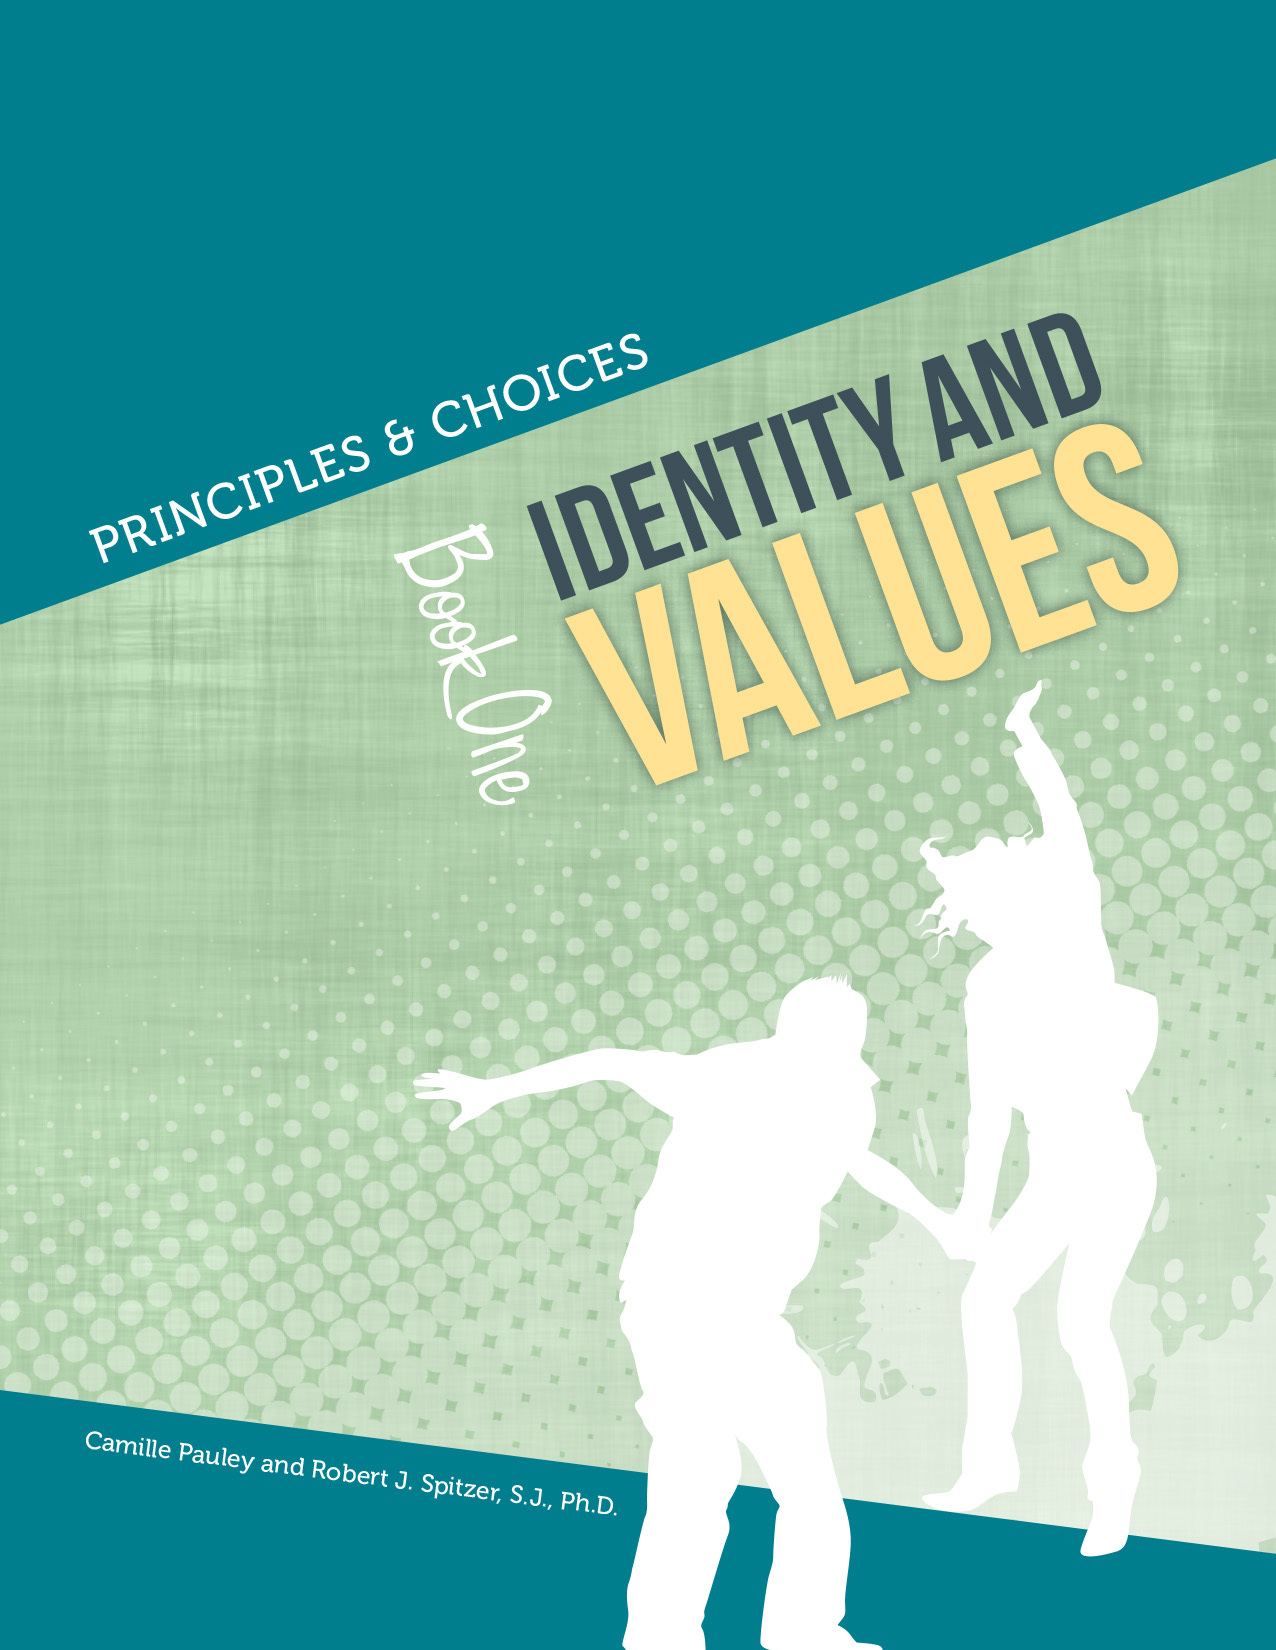 Principles & Choices 1 – Identity and Values